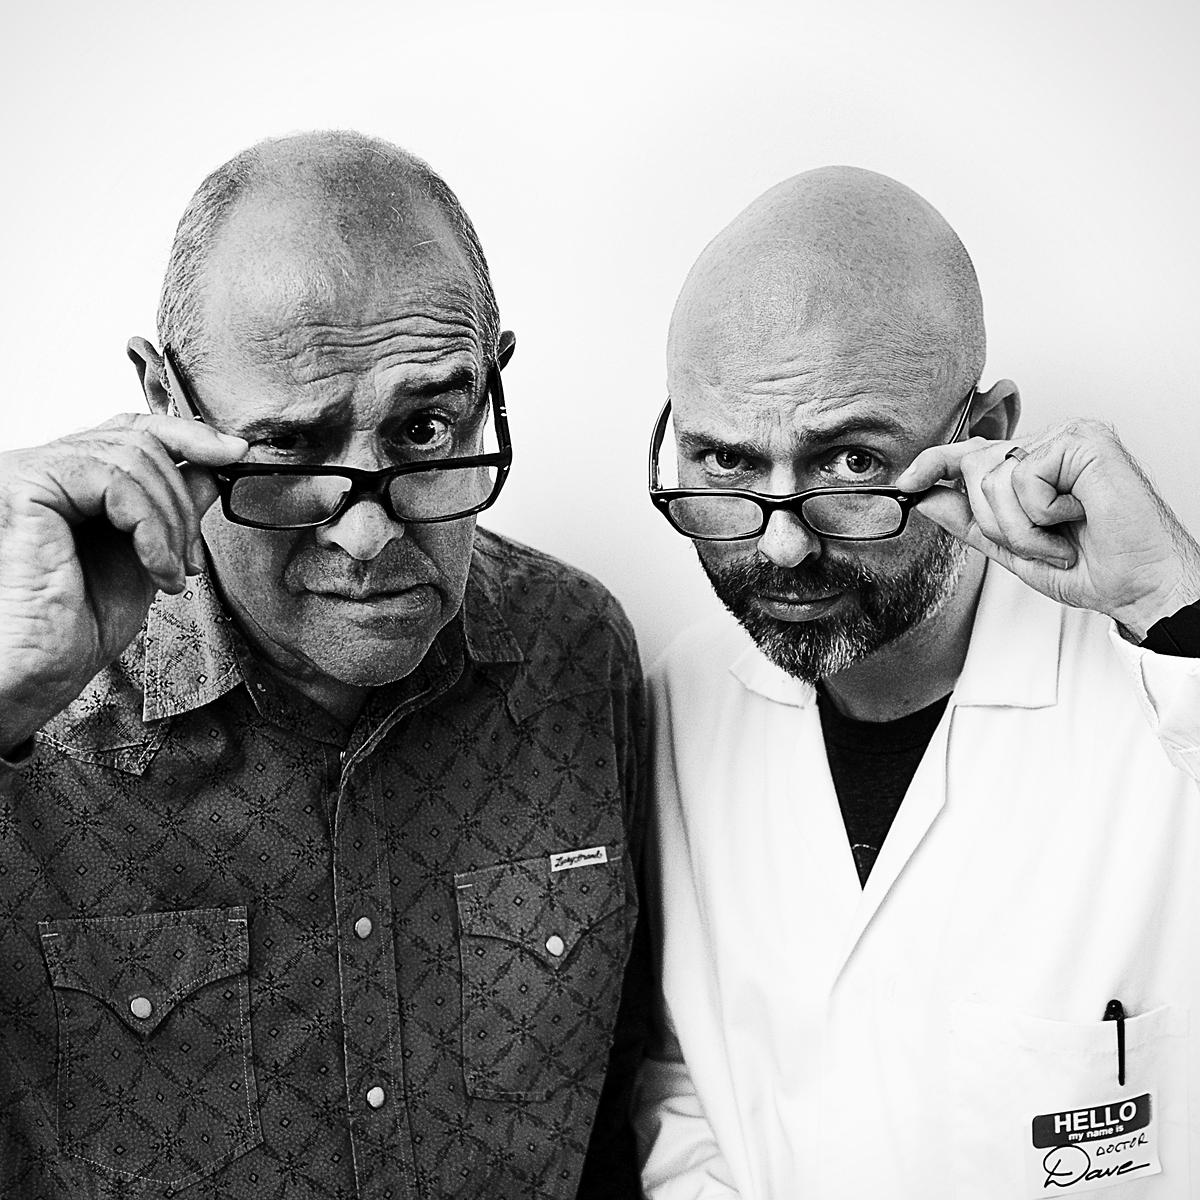 Portrait of creative directors John Jessup & Dave Birss by Julian Hanford for The Drum